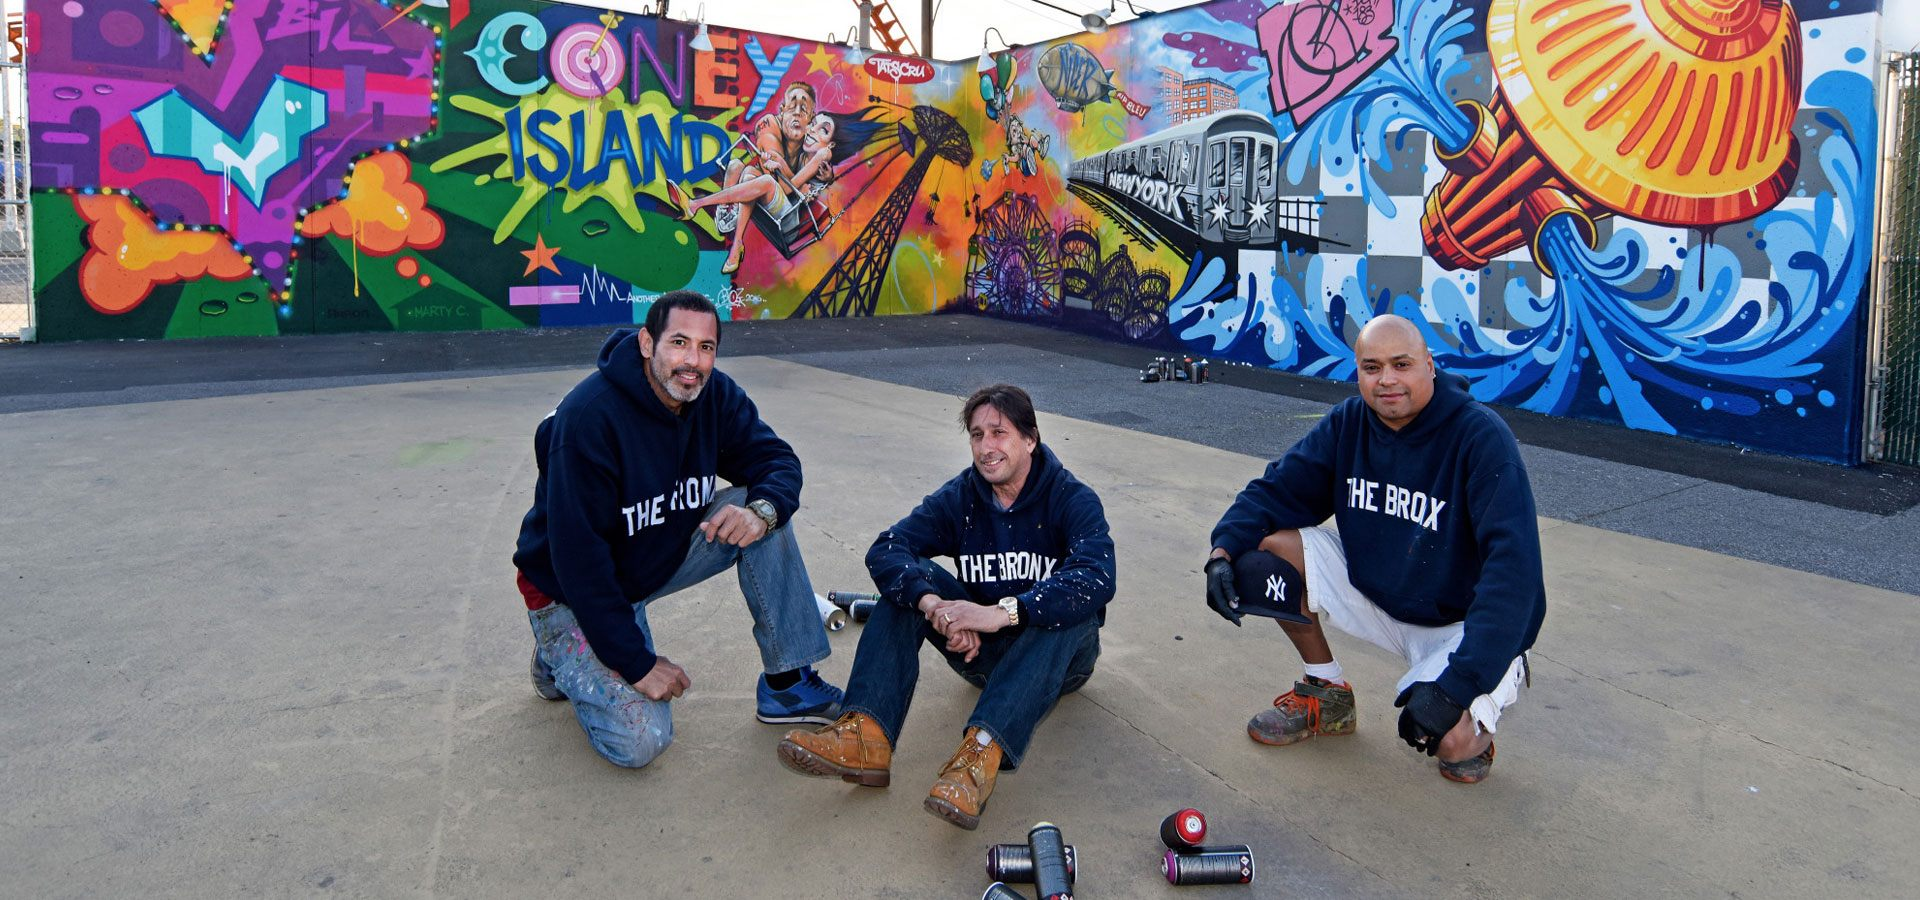 Three people with spray paint cans posing in front of a mural